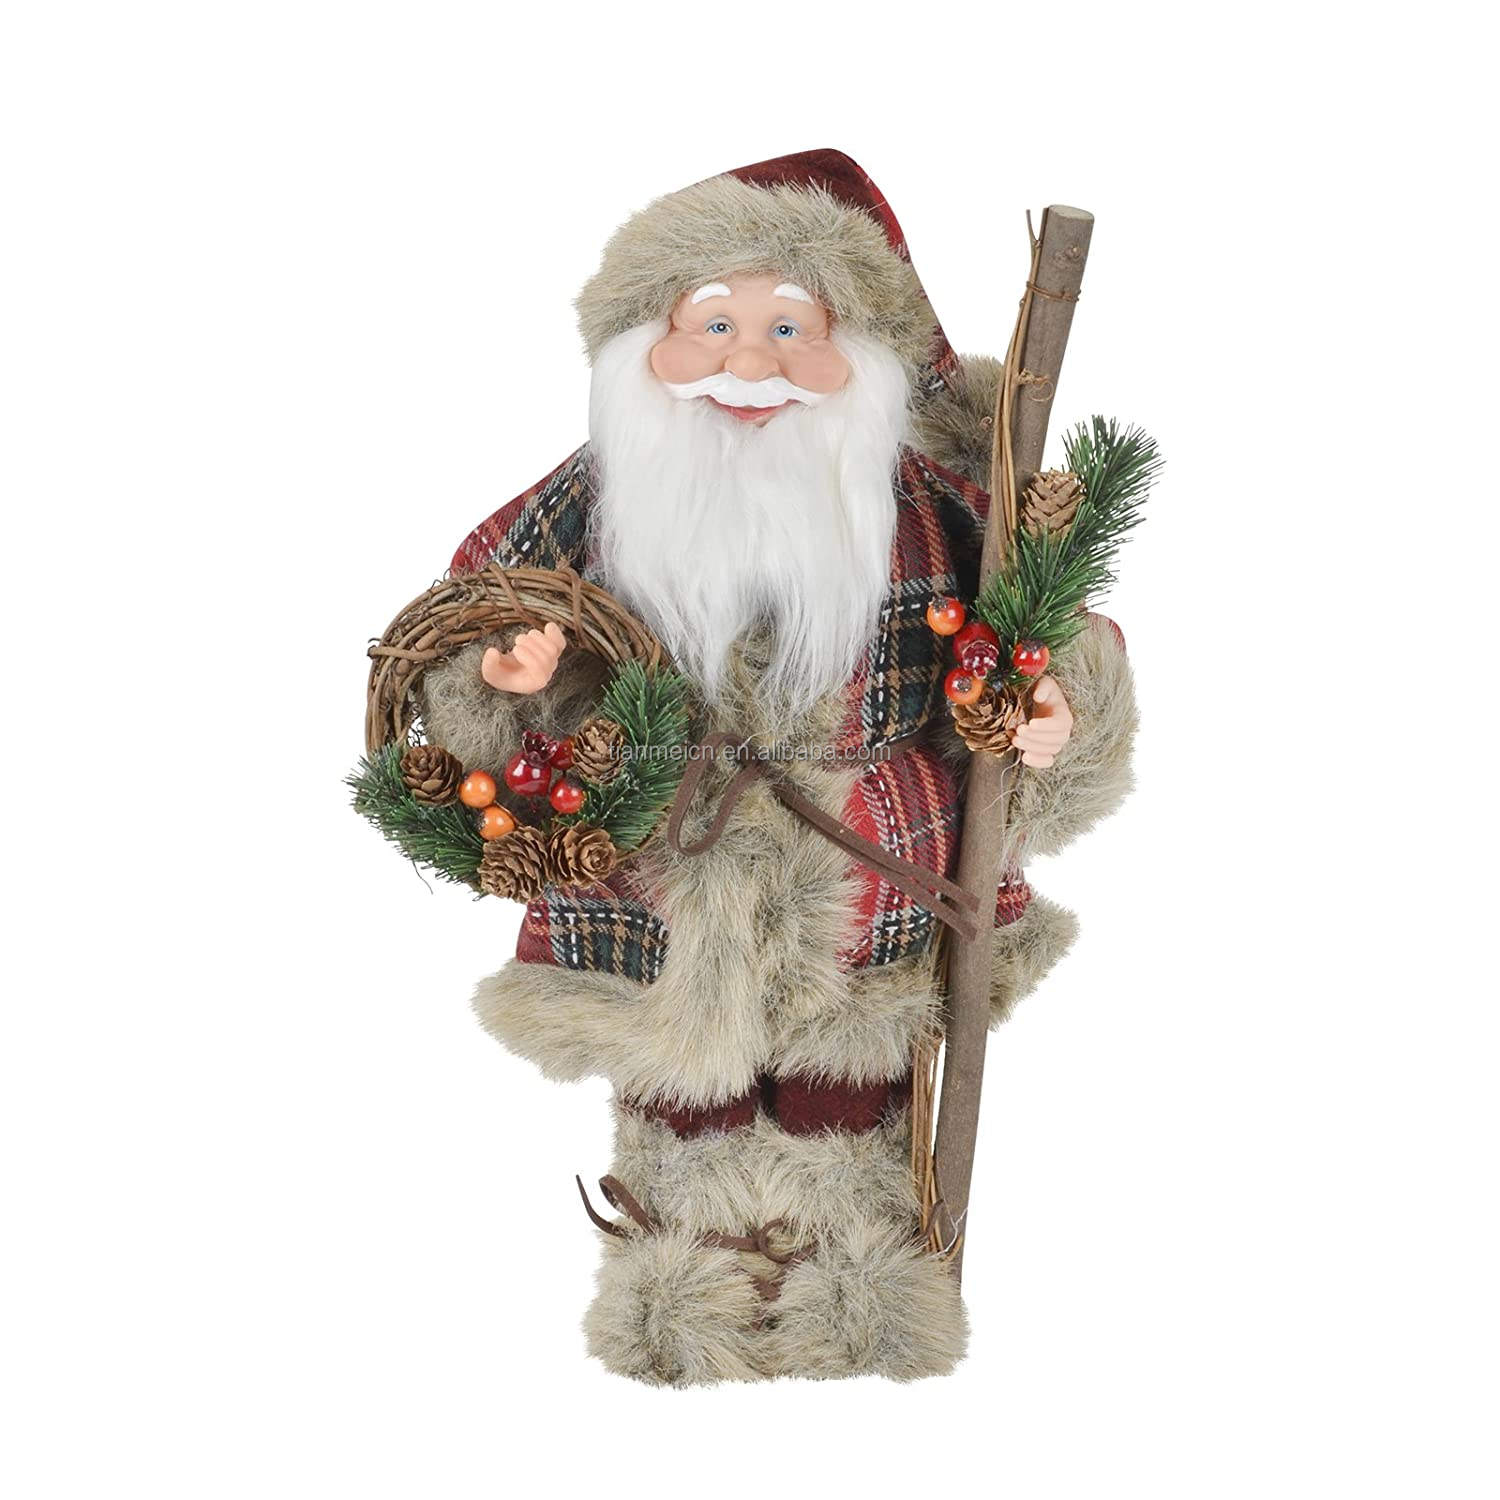 80Cm Permanent Kerstman Rotan Hoepel Decor Vakantie Kerst Decoratie Set Figurie Collection Christmas Craft Supplies